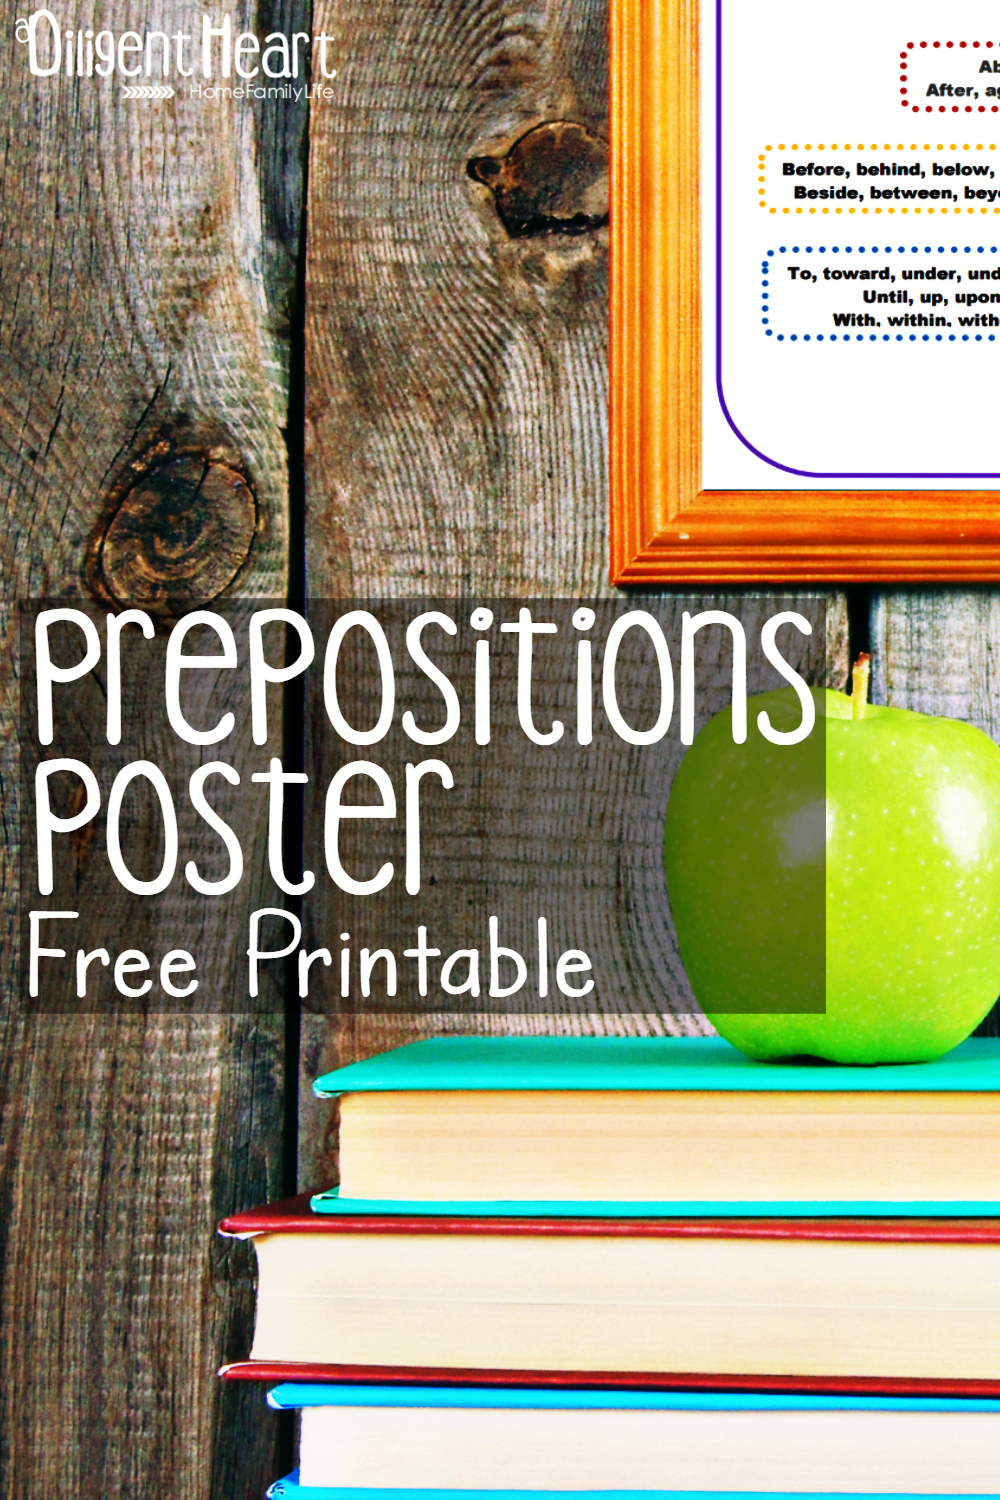 Studying prepositions with your kiddos this year? Use this wall poster to help them practice their prepositions. It's great for them to keep on hand while working through grammar lessons too! Prepositions Poster Free Printable | adiligentherat.com